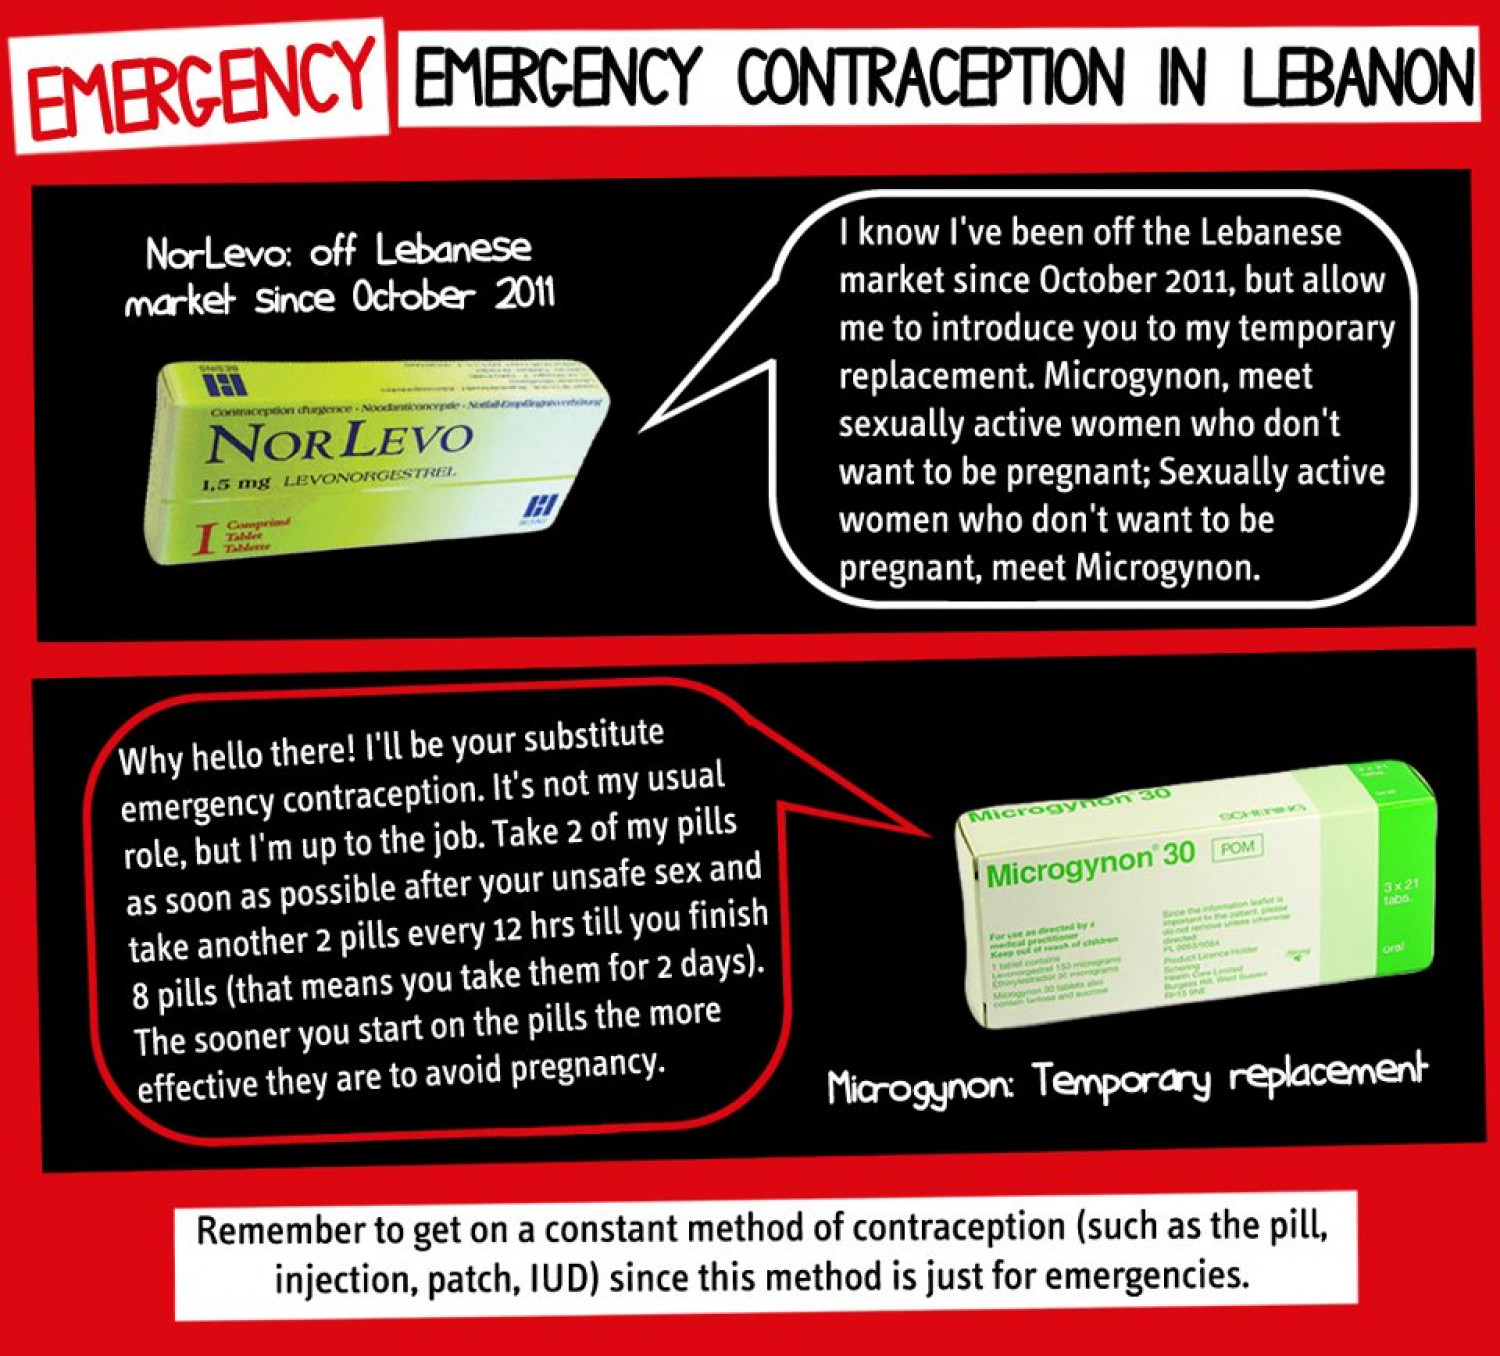 Temp Emergency Contraception in Lebanon Infographic